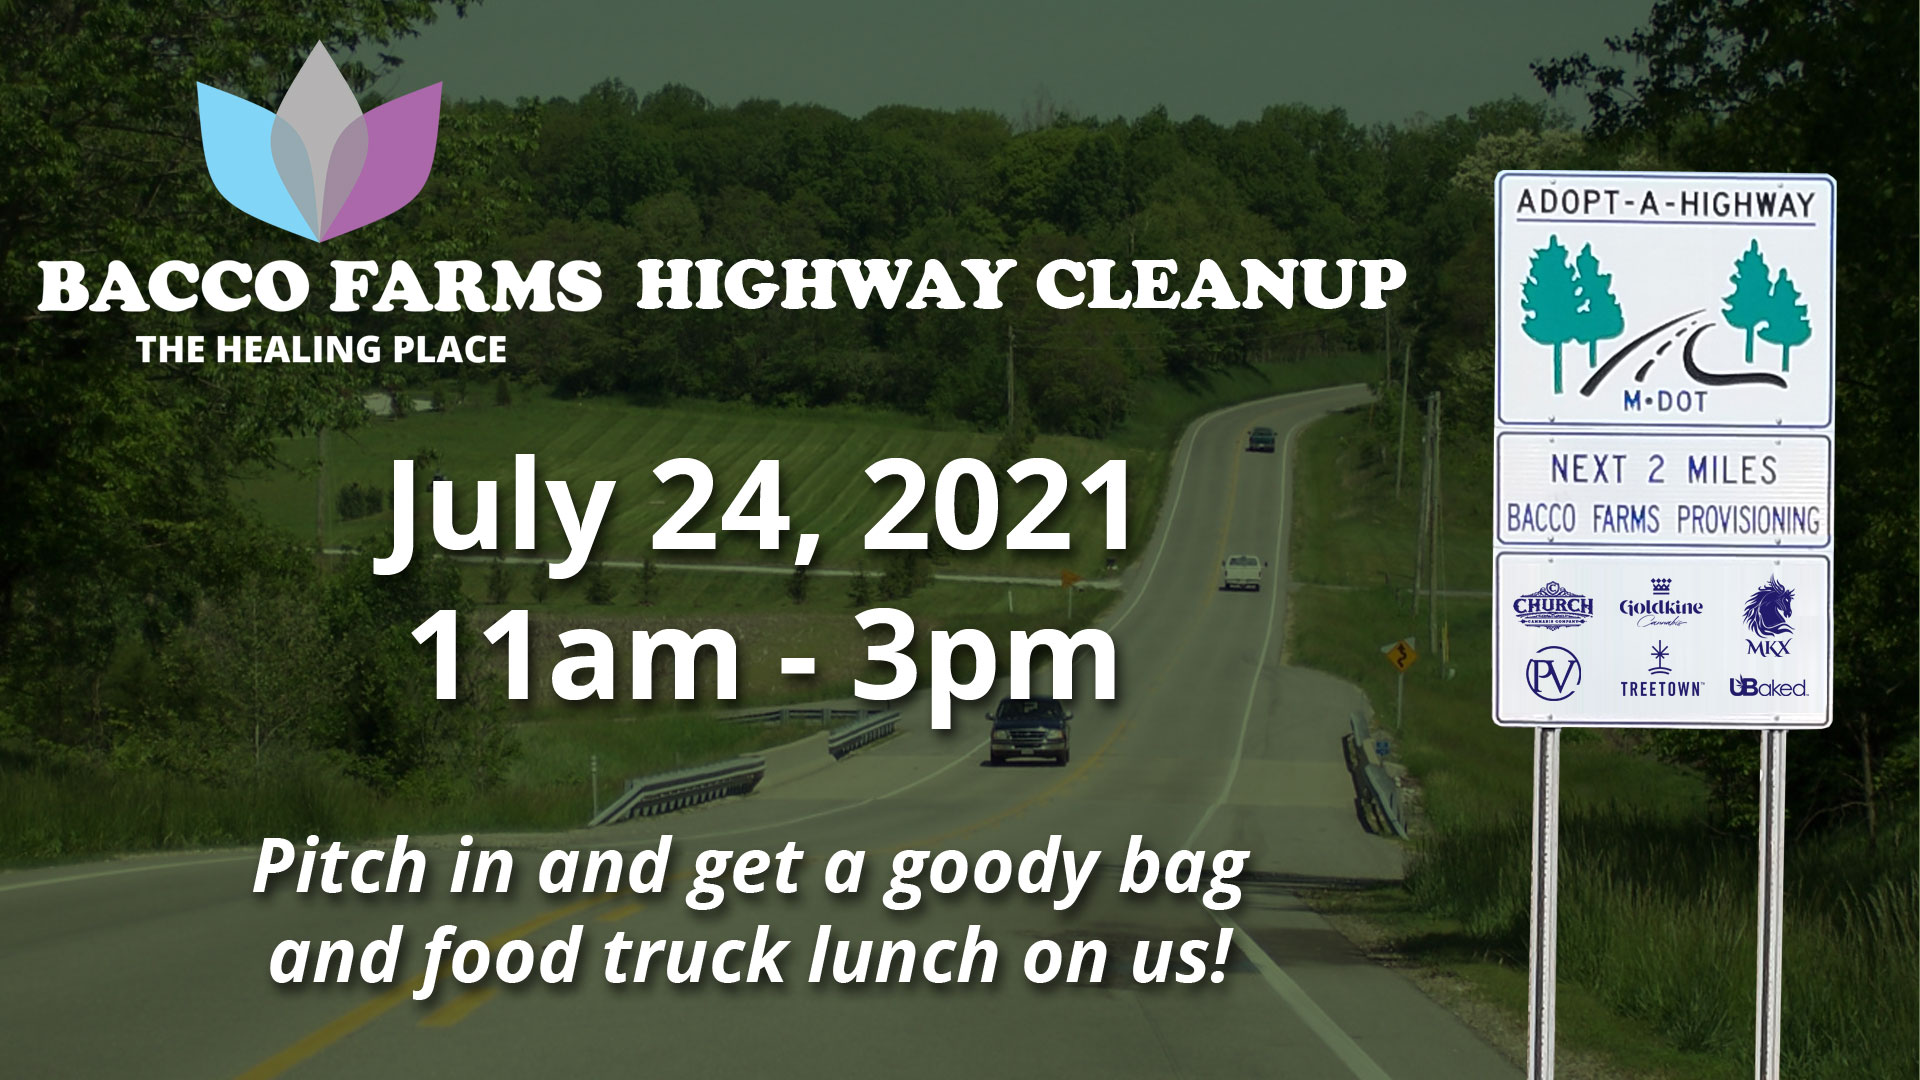 Bacco Farms' Adopt-A-Highway Cleanup